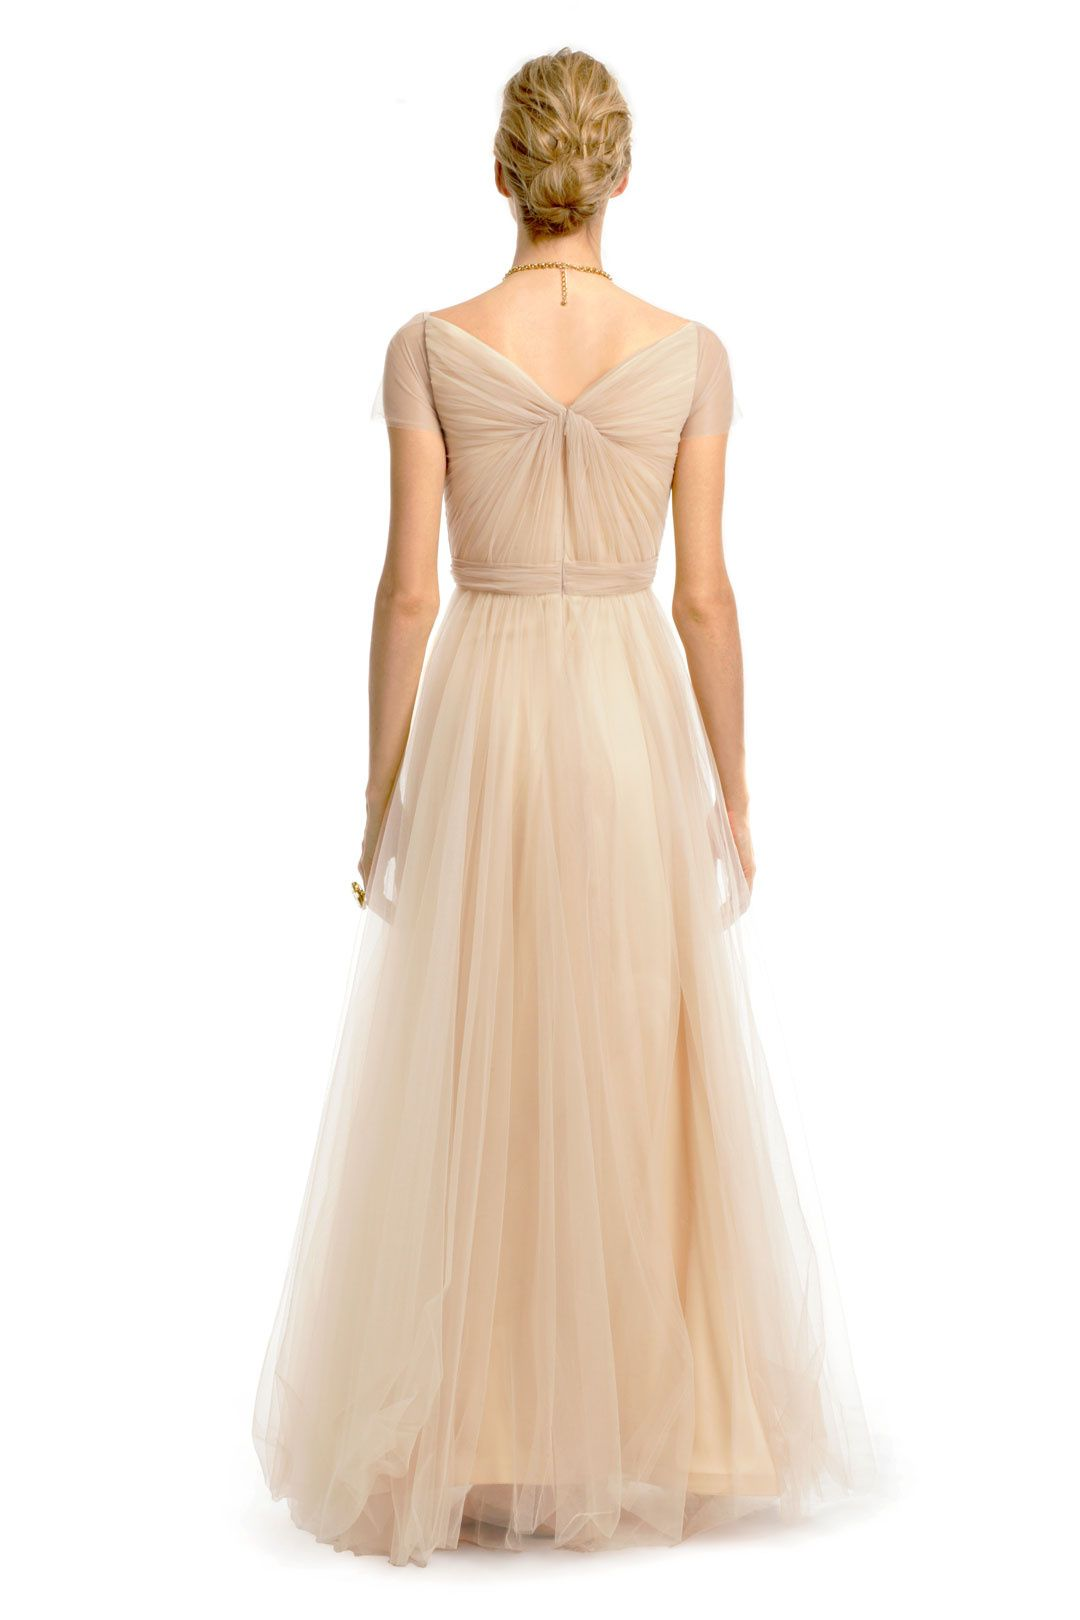 Florence Gown | Prom | Pinterest | Florence, Gowns and Designers